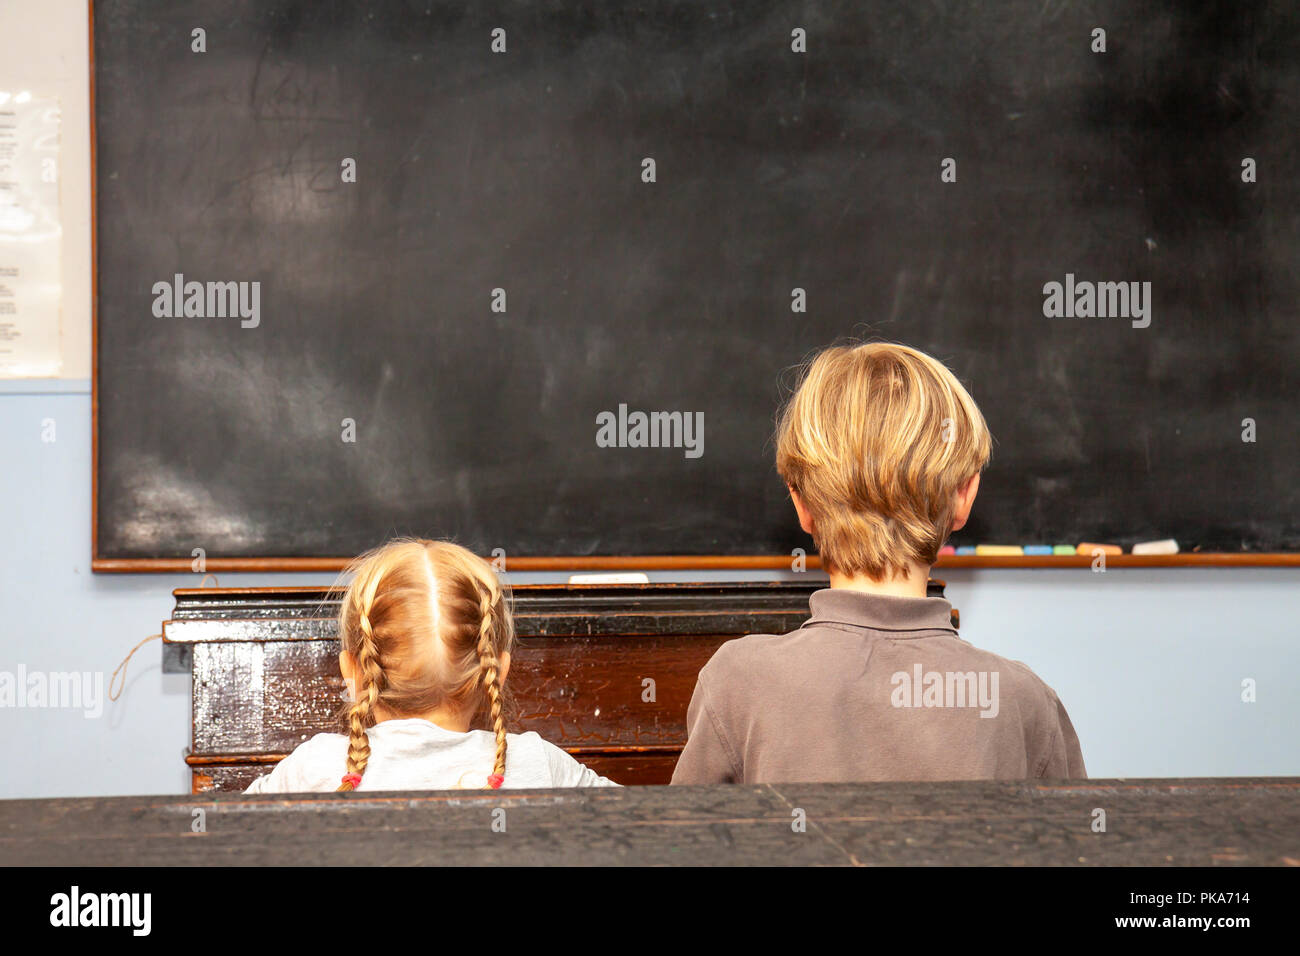 Concept of public primary school education with young boy and girl sitting in the classroom. - Stock Image